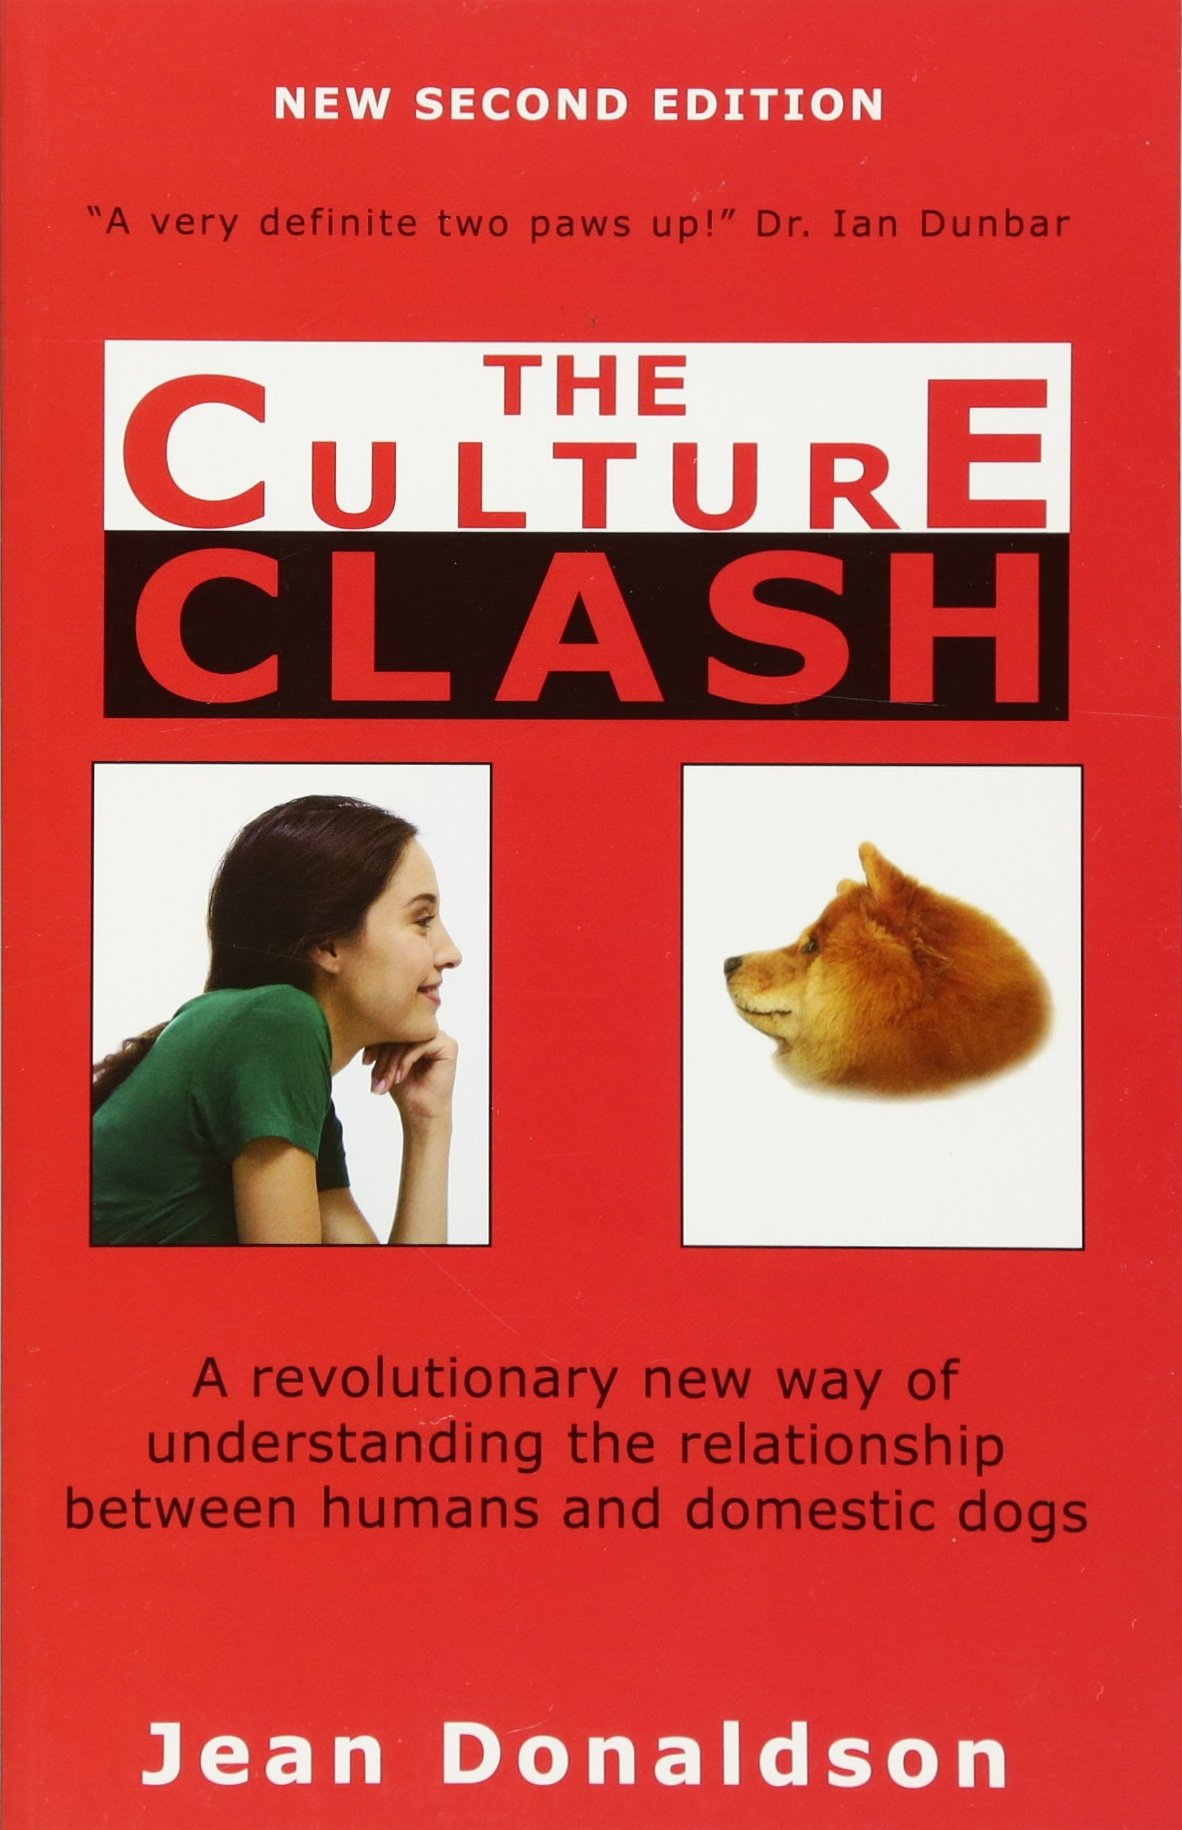 Culture Clash: A Revolutionary New Way of Understanding the Relationship Between Humans and Domestic Dogs